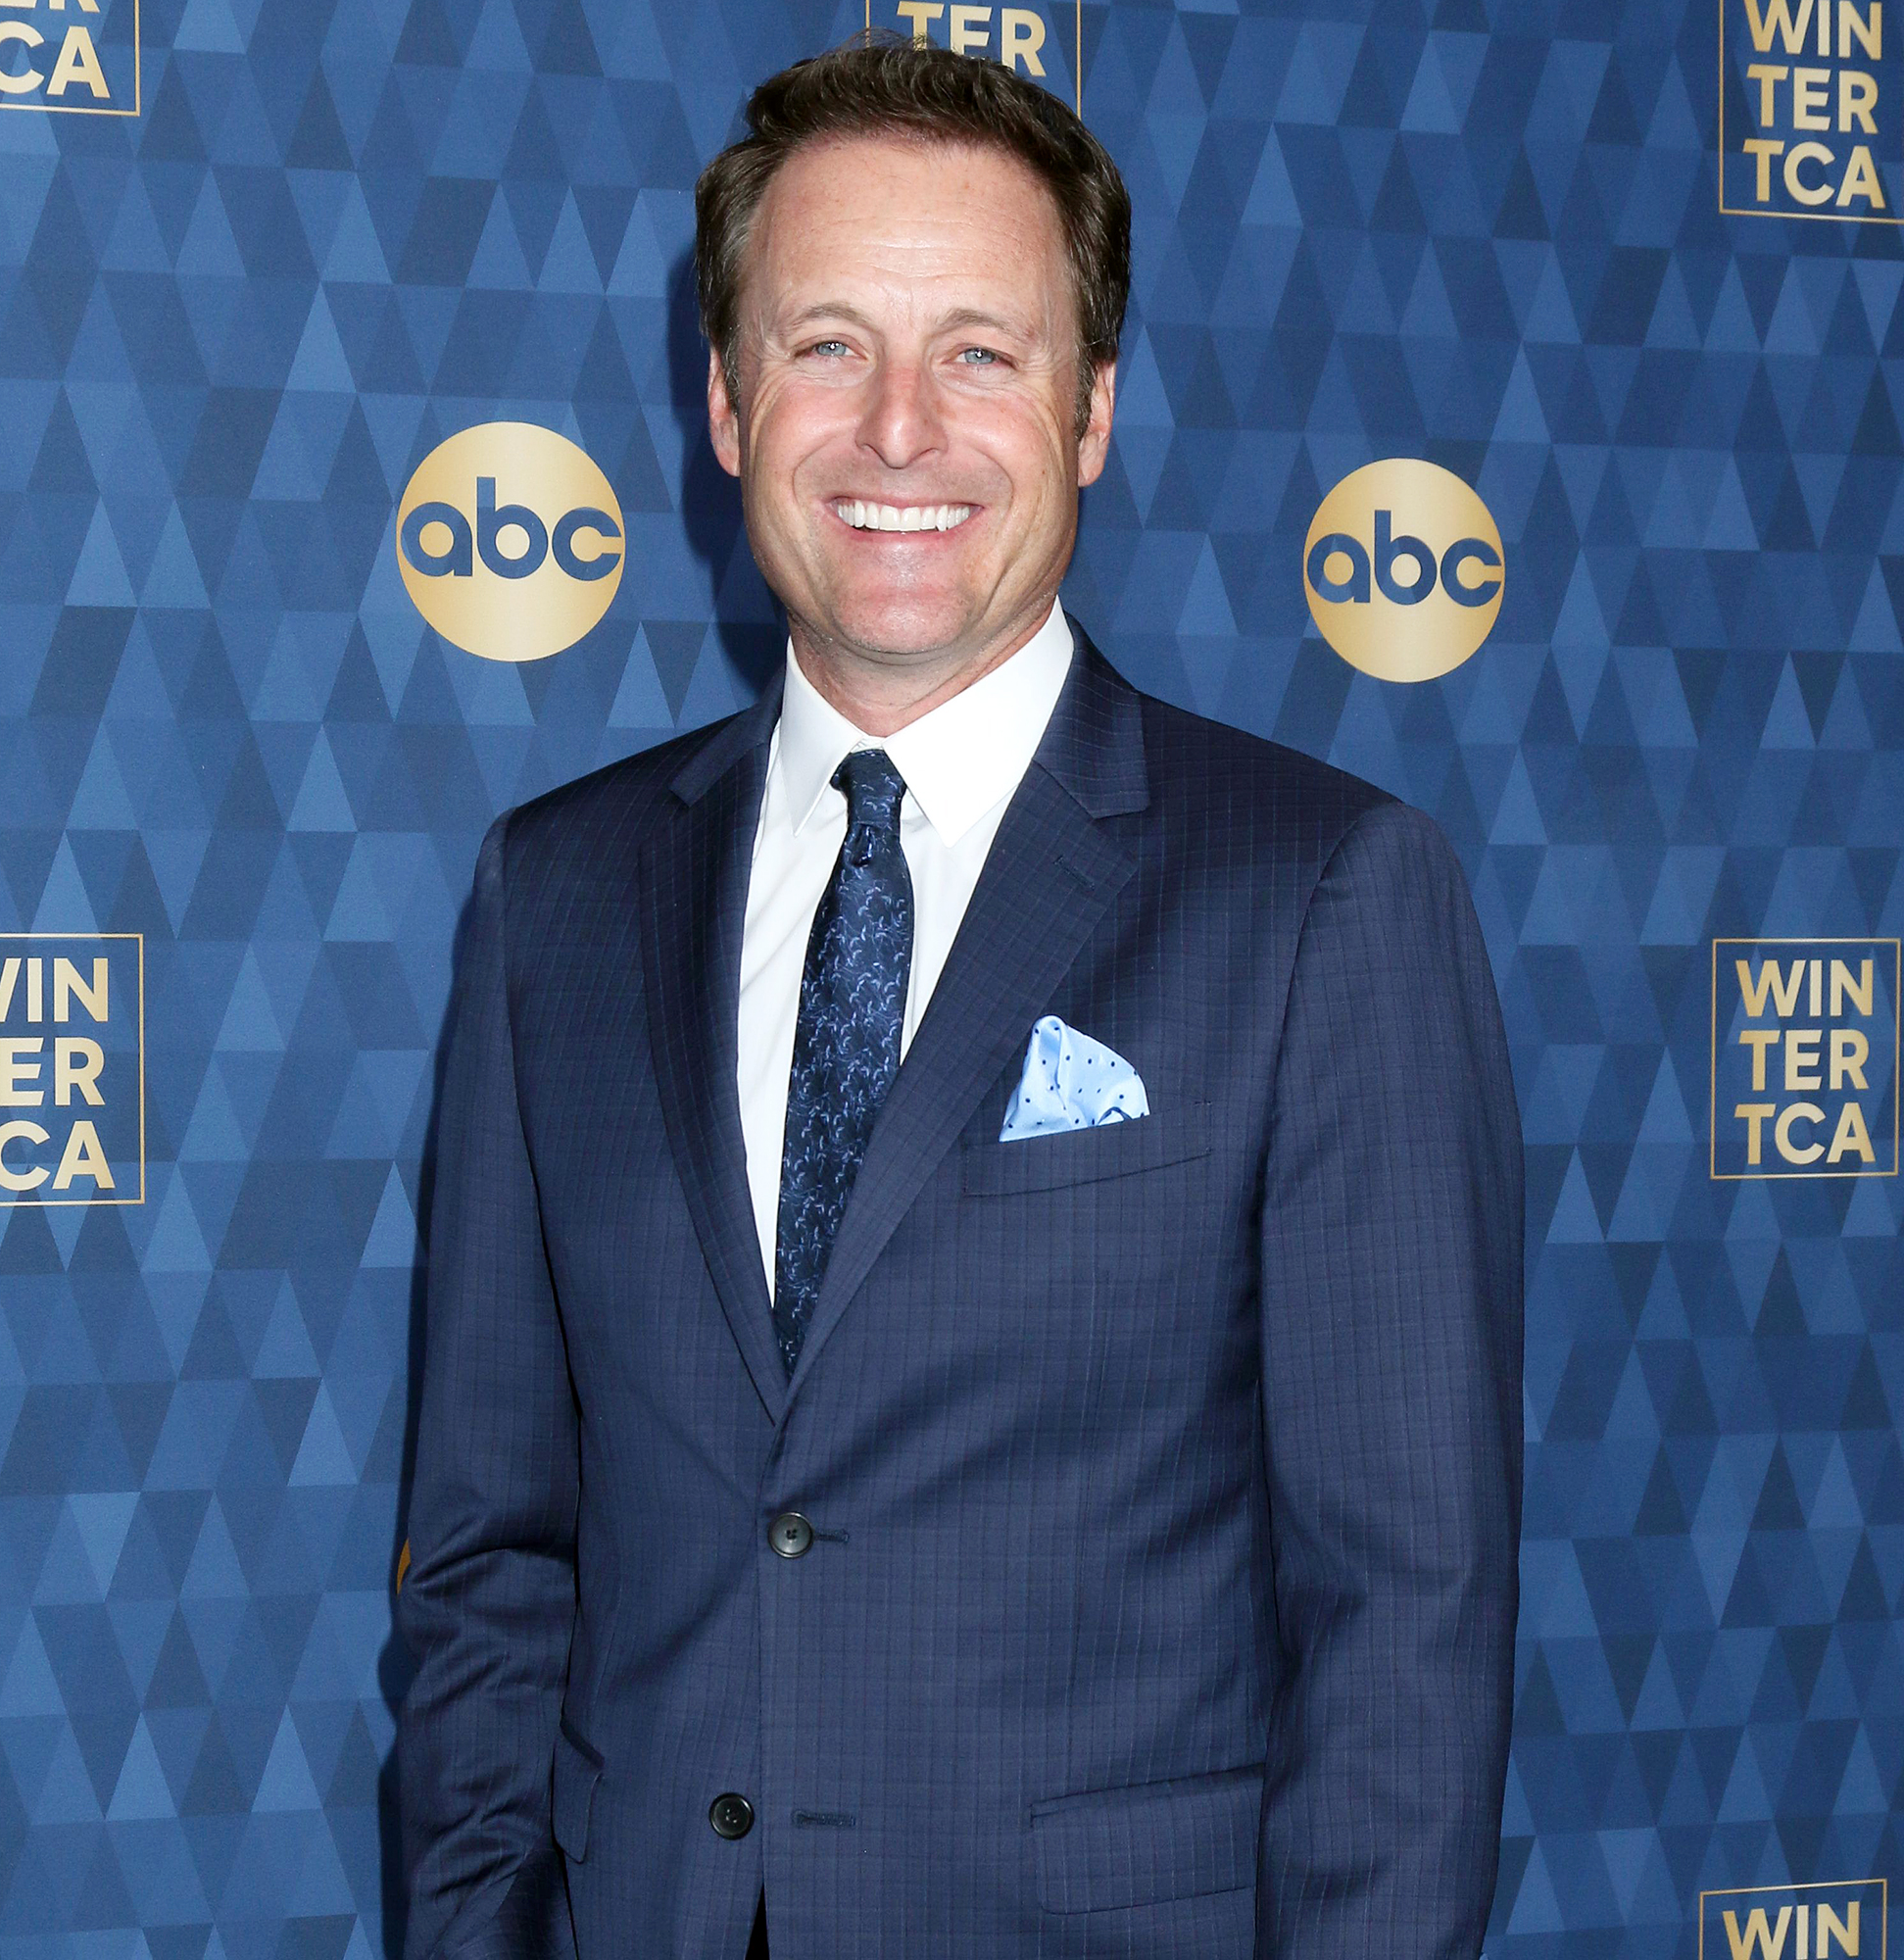 Carly Waddell and Evan Bass Daughter Calls Chris Harrison Grandpa While Watching The Bachelorette